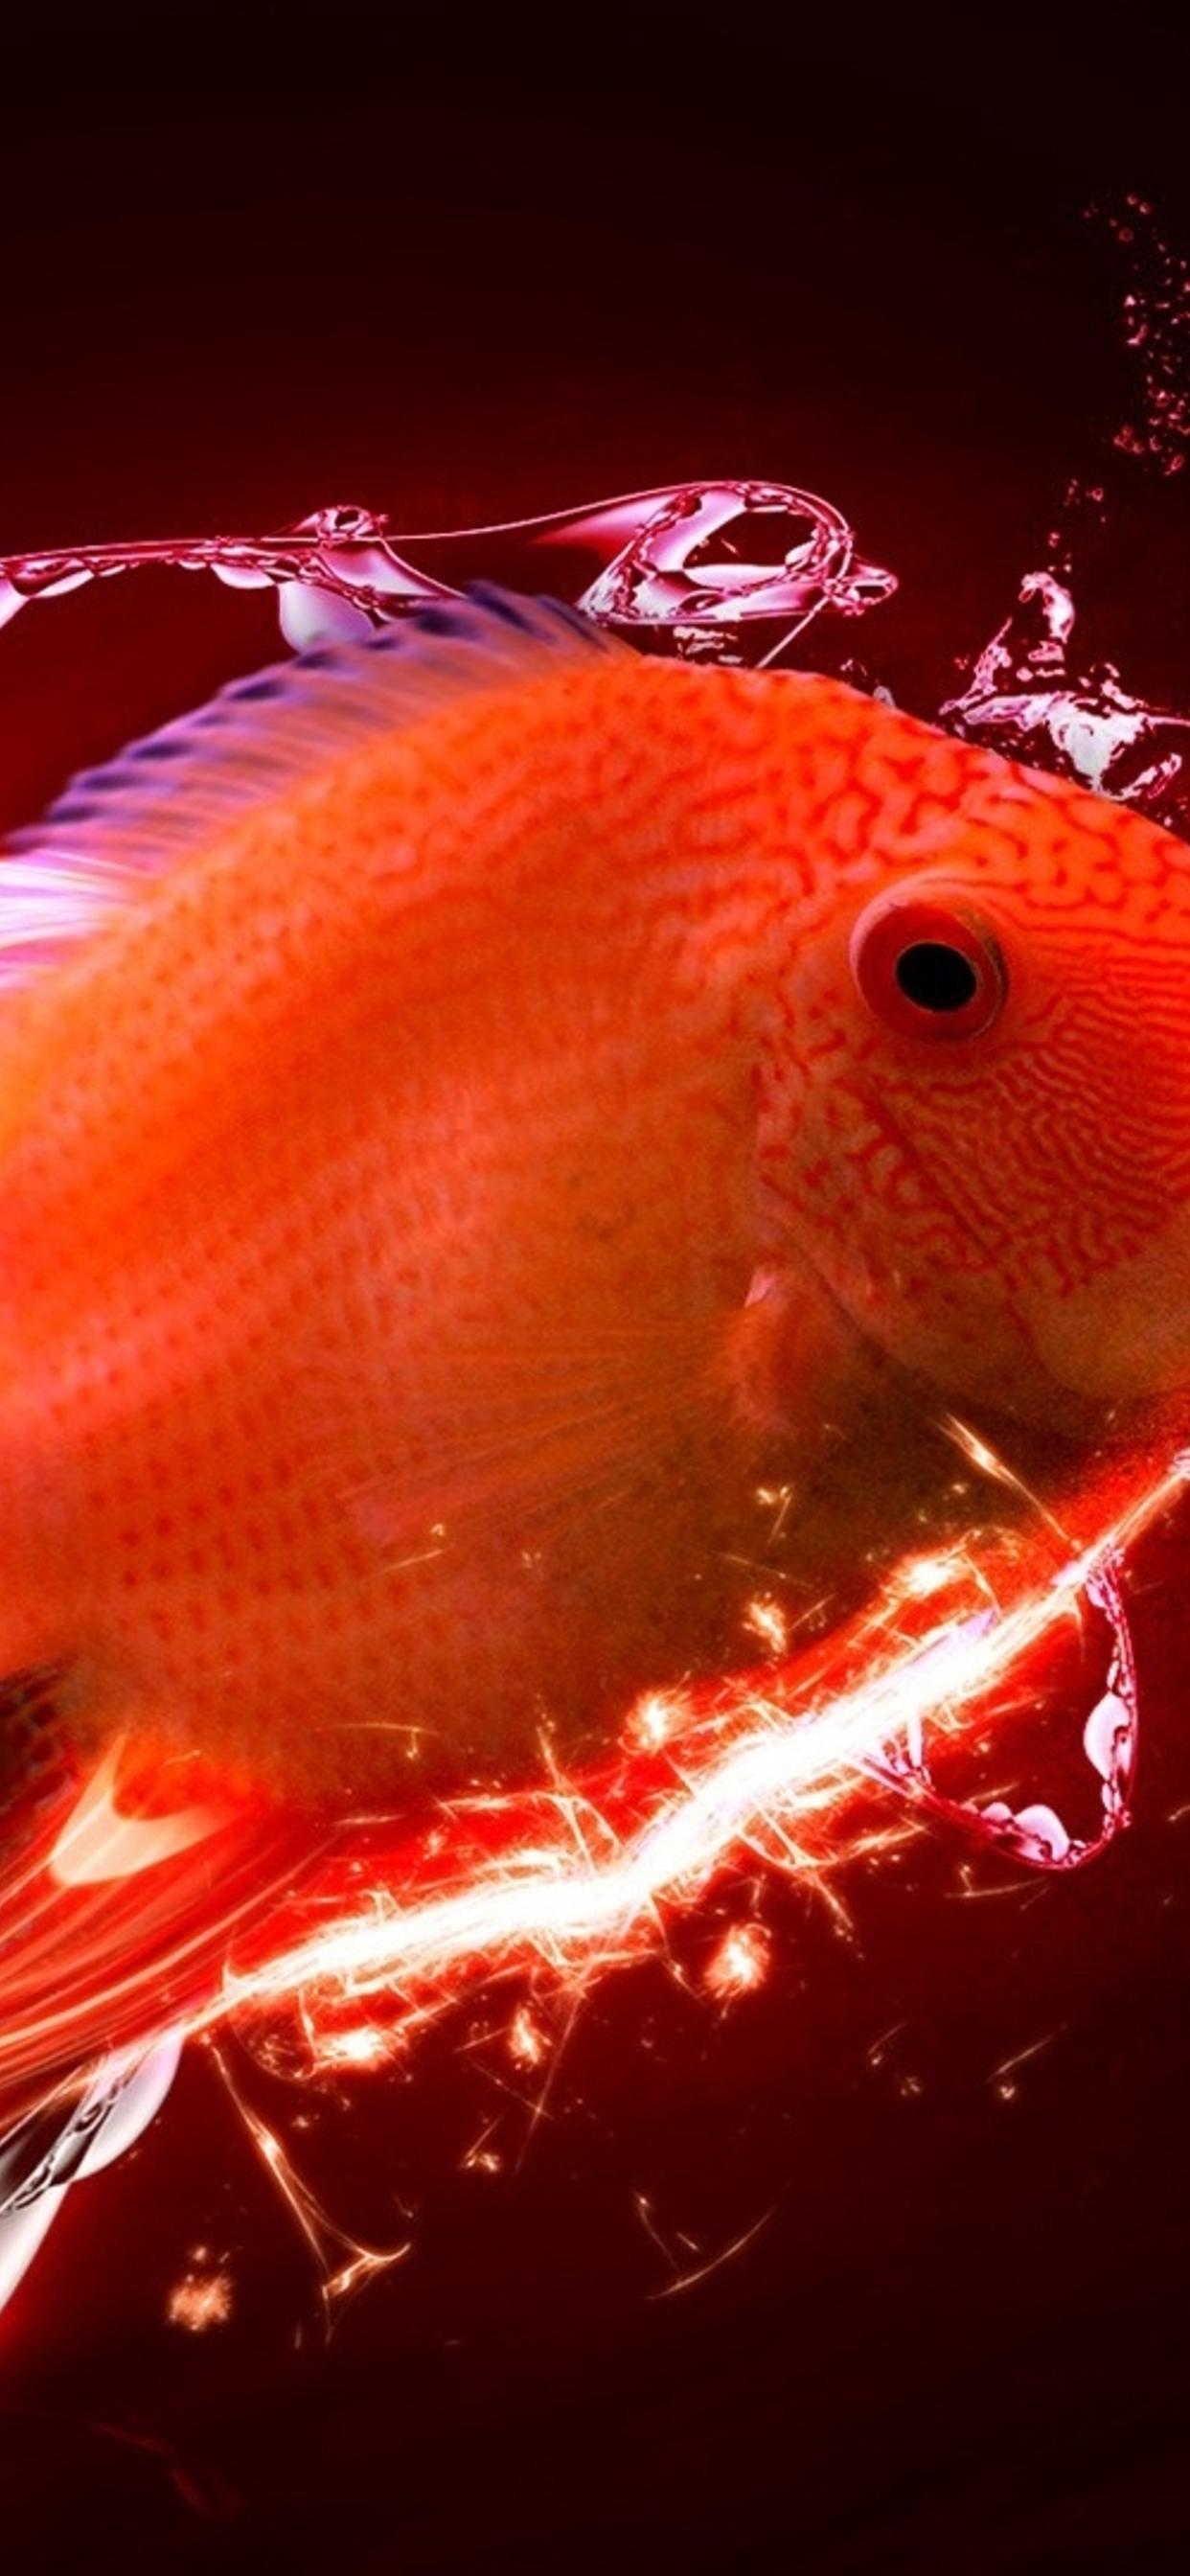 Abstract Red Fish In A Hd Wallpaper